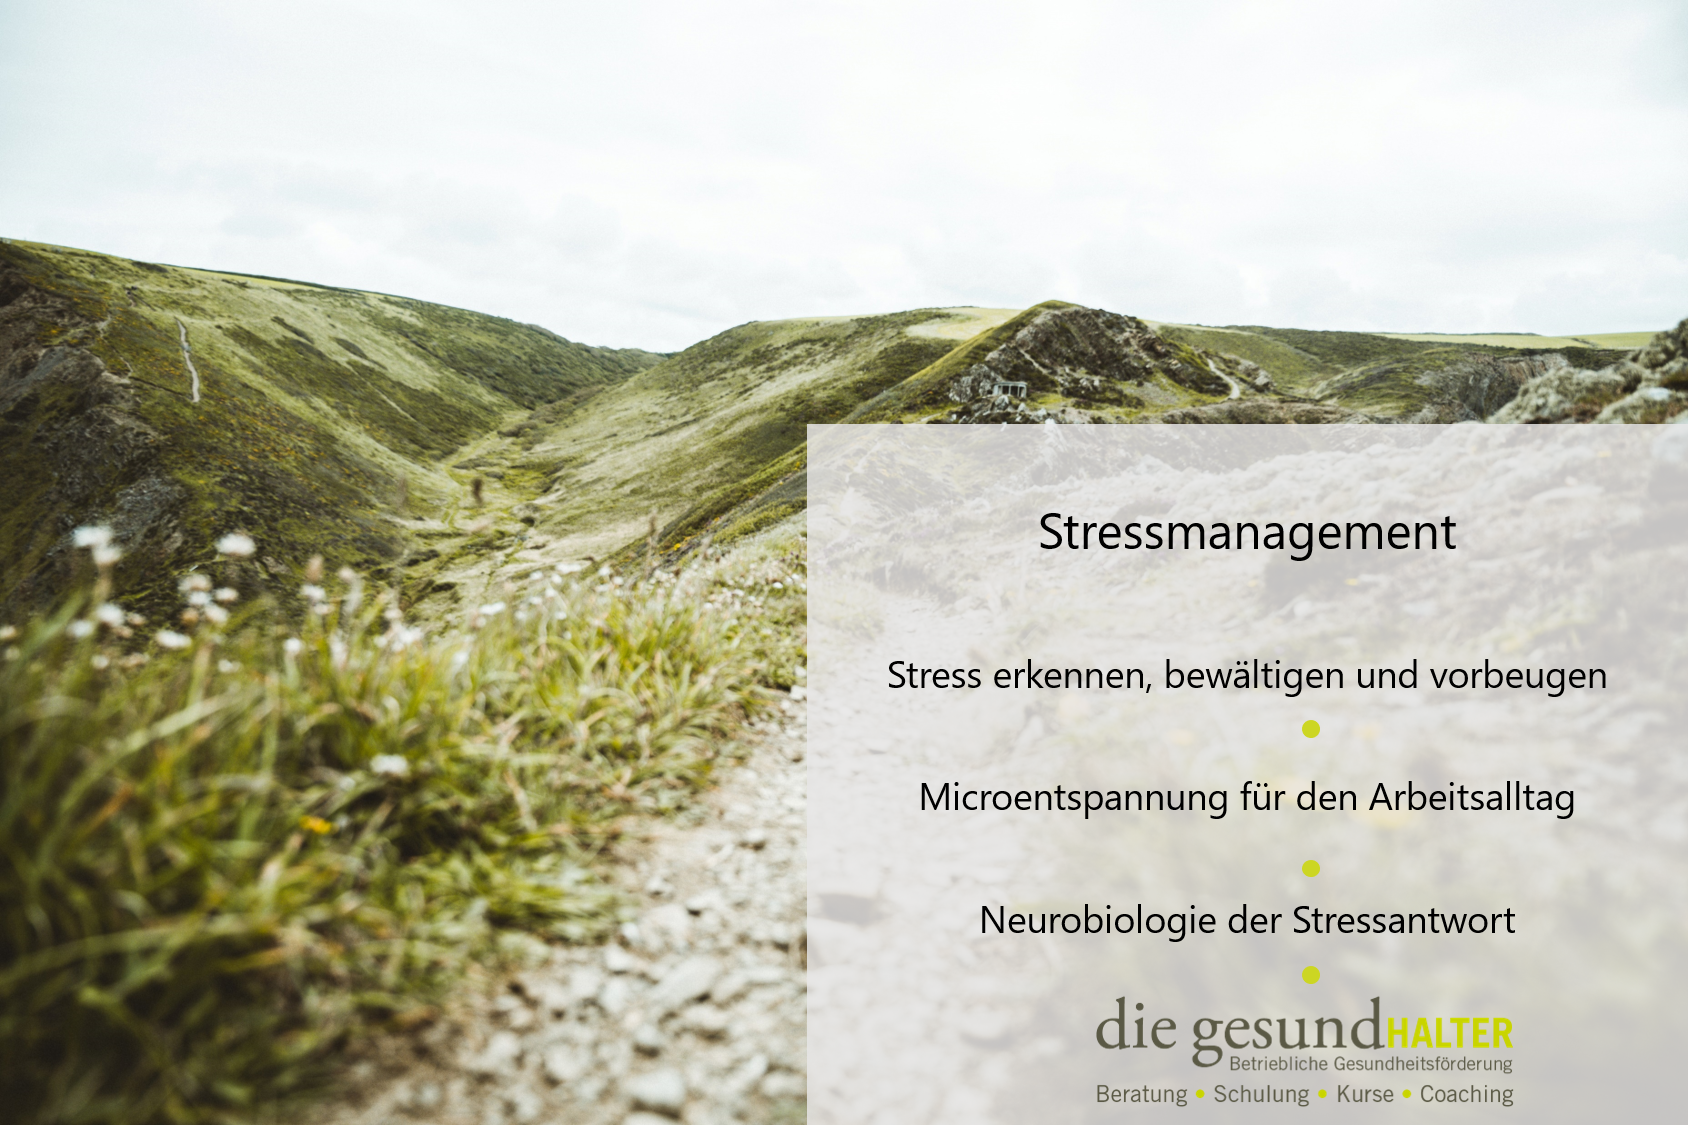 Stressmanagement3